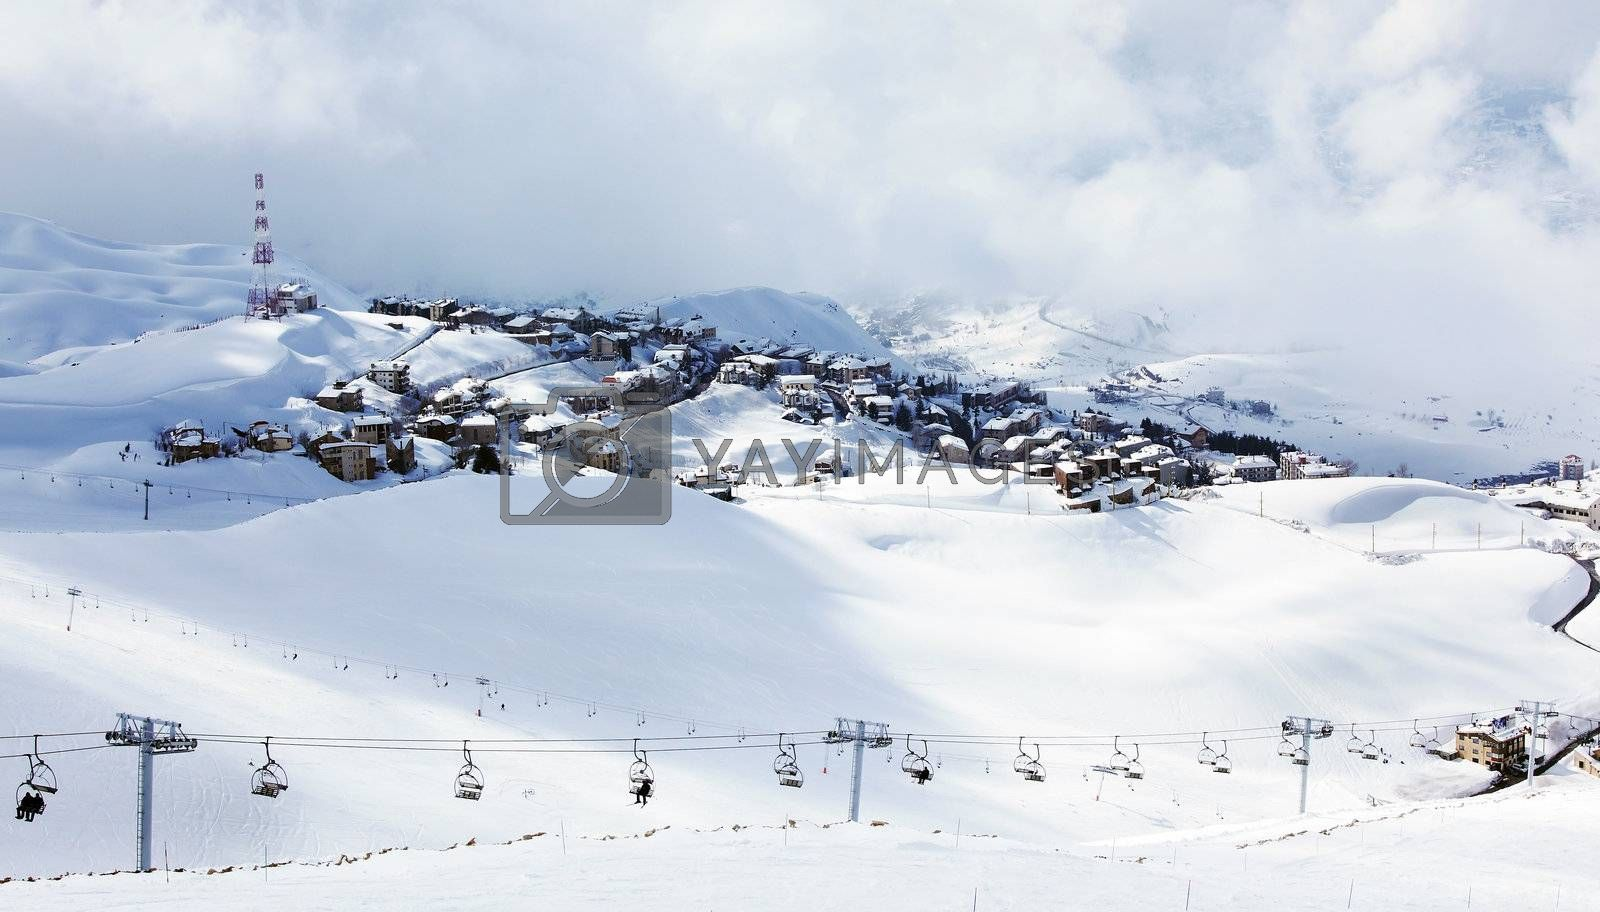 Winter mountain ski resort landscape with snow and cute little houses, chairlift with people playing sport